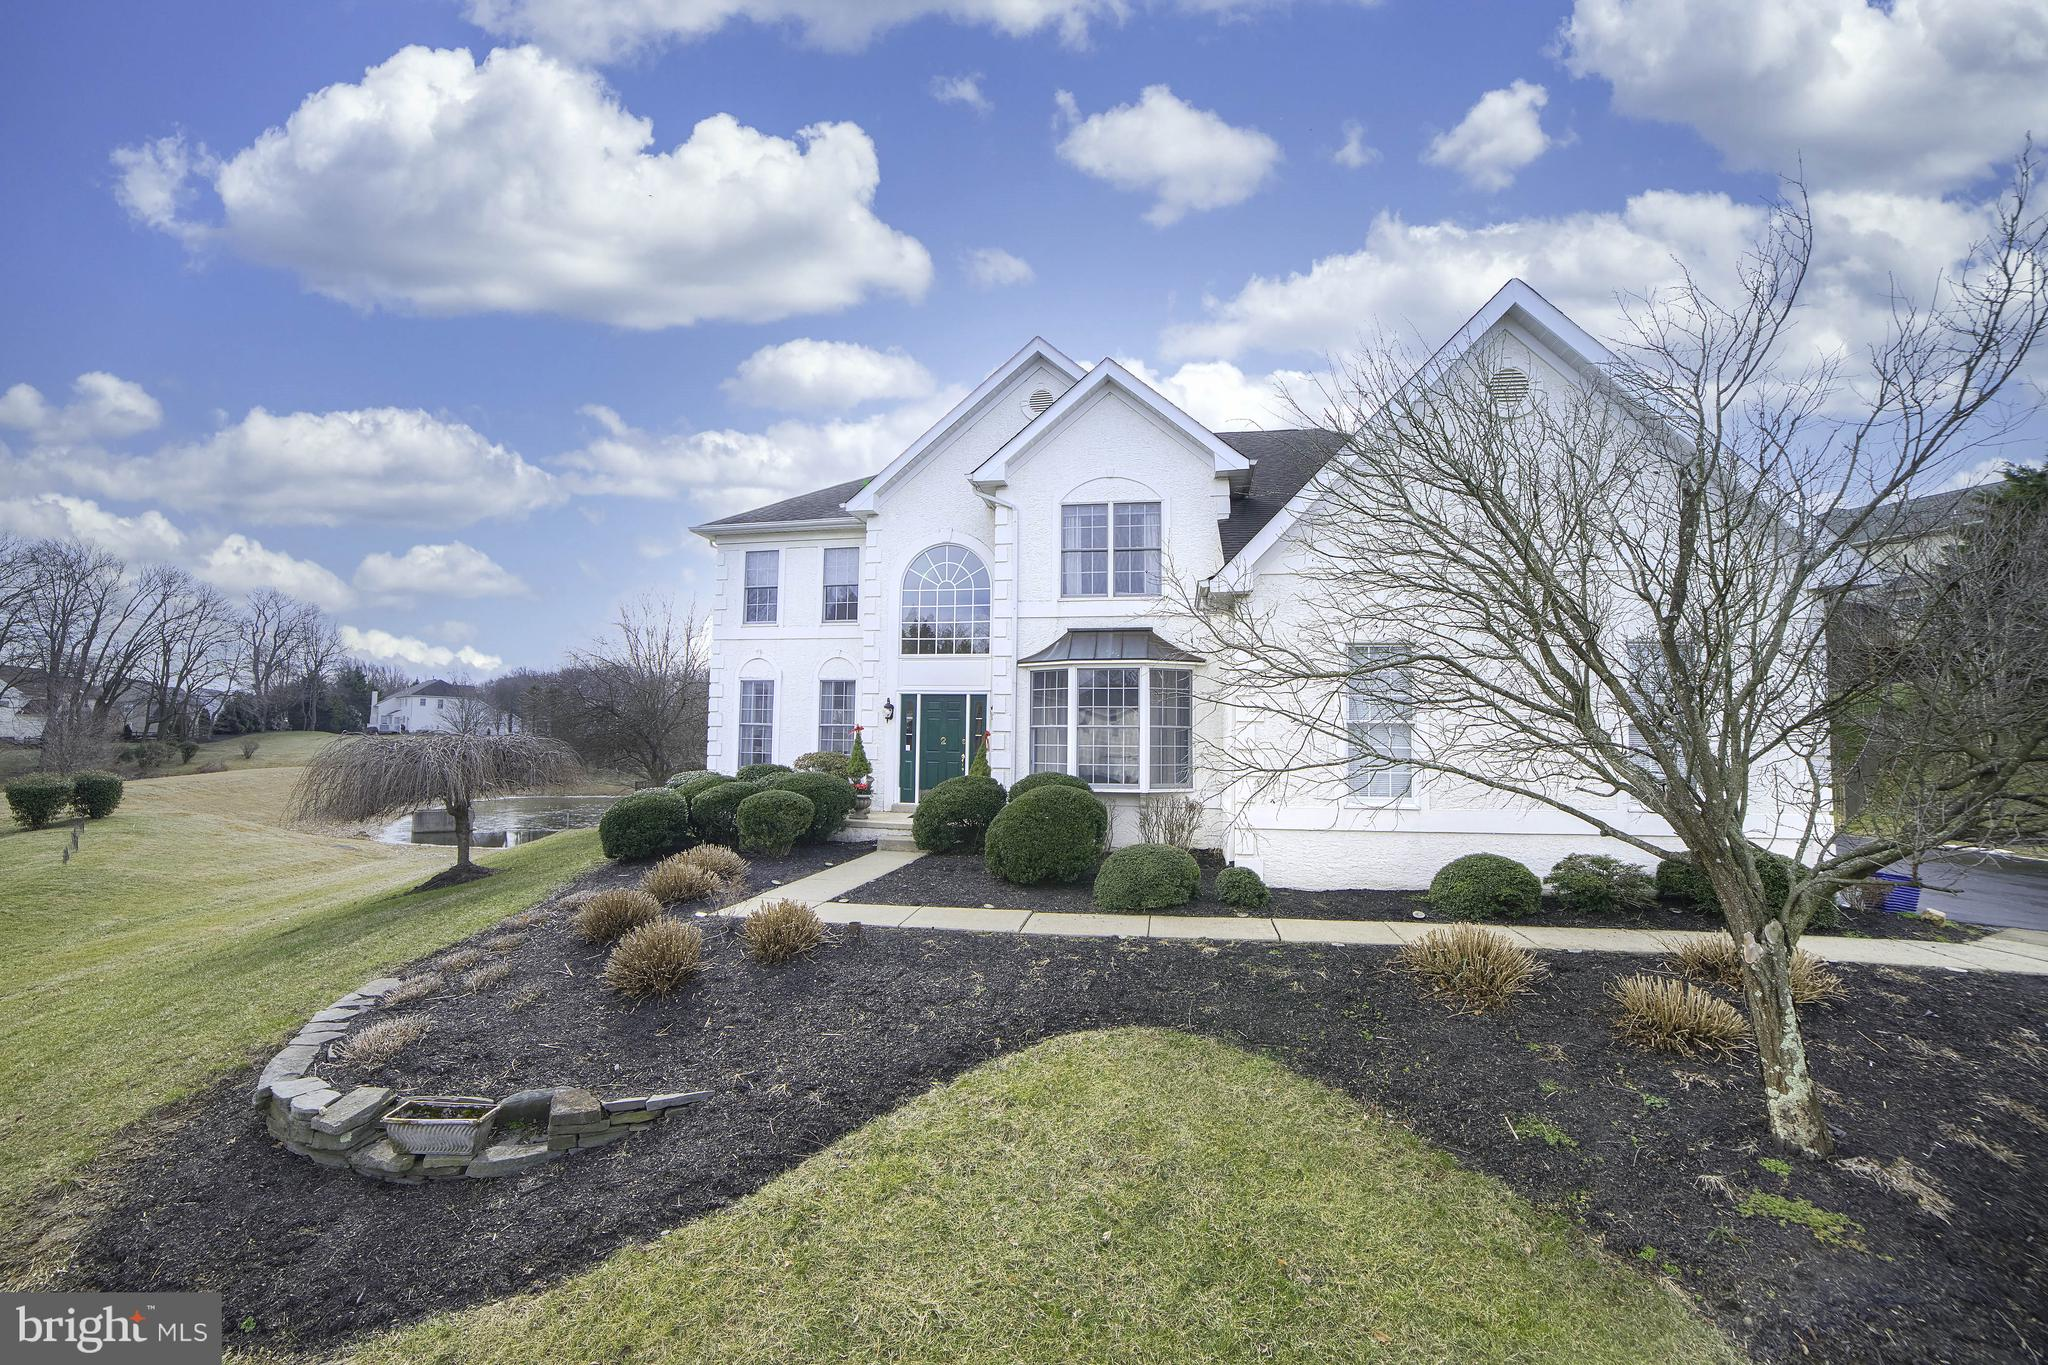 2 KEENAN COURT, HOCKESSIN, DE 19707